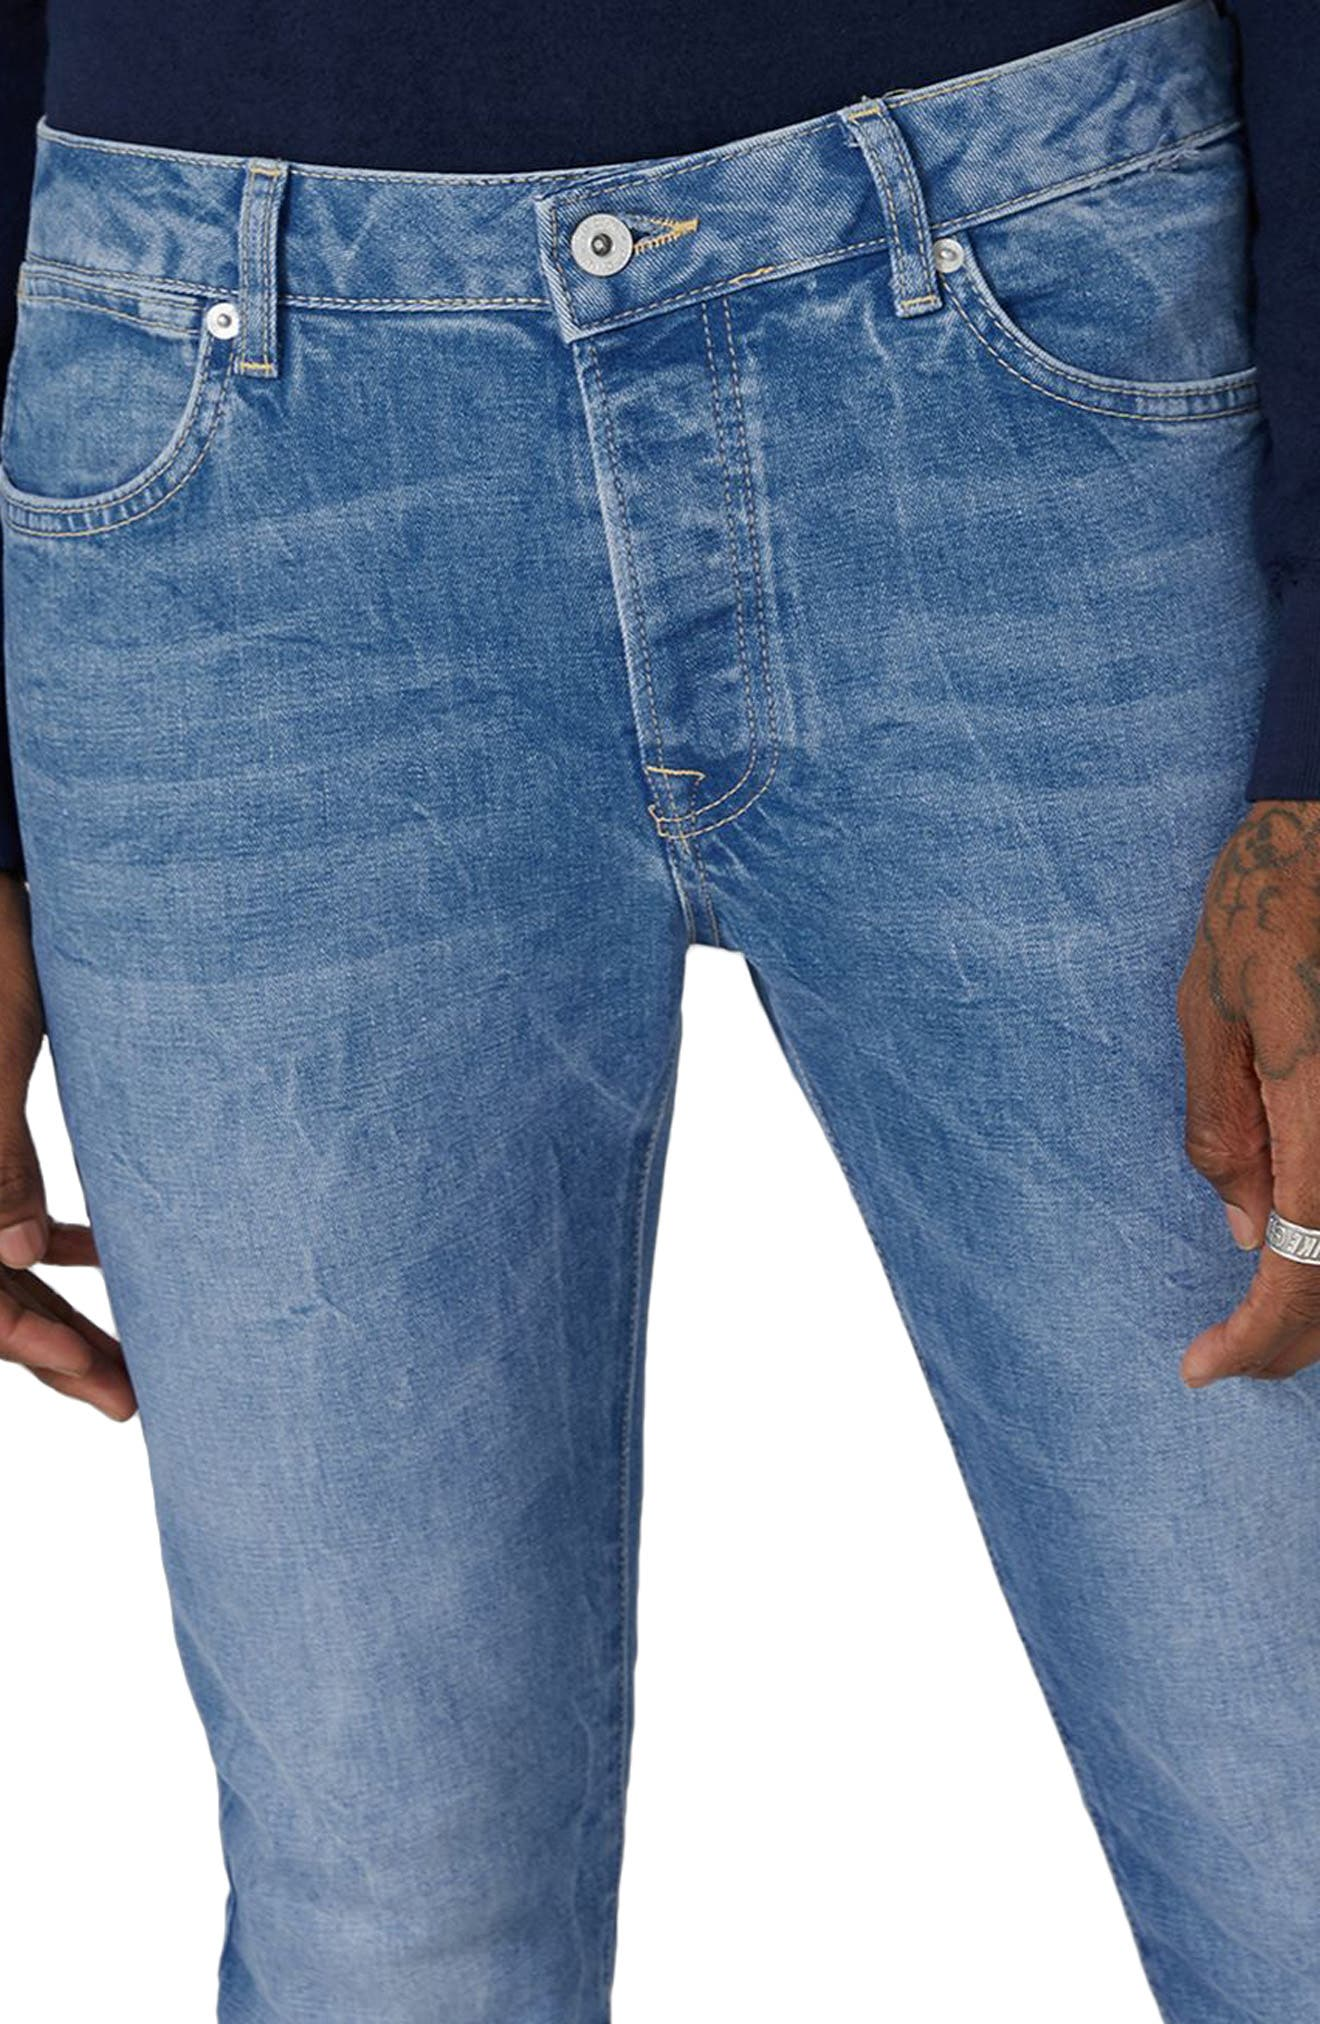 Stretch Slim Leg Jeans,                             Alternate thumbnail 3, color,                             Bright Blue